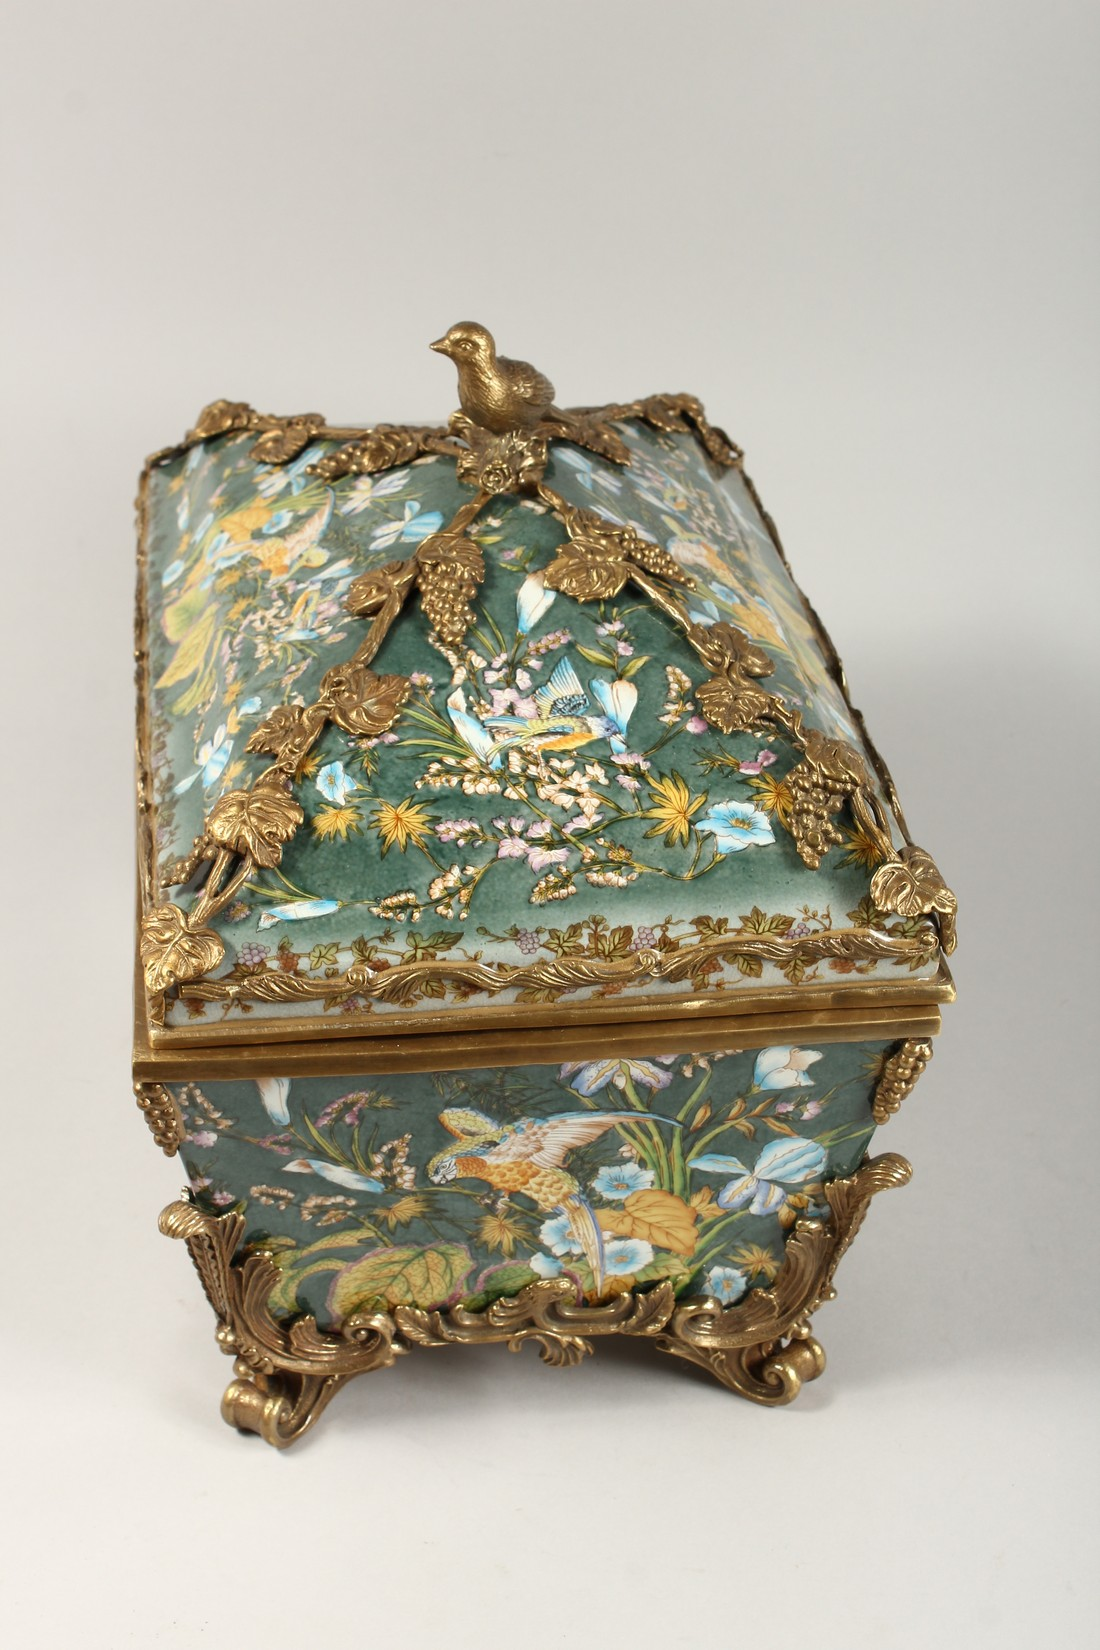 A LARGE CONTINENTAL STYLE PORCELAIN AND BRONZE MOUNTED CASKET, decorated with exotic flowers and - Image 4 of 5